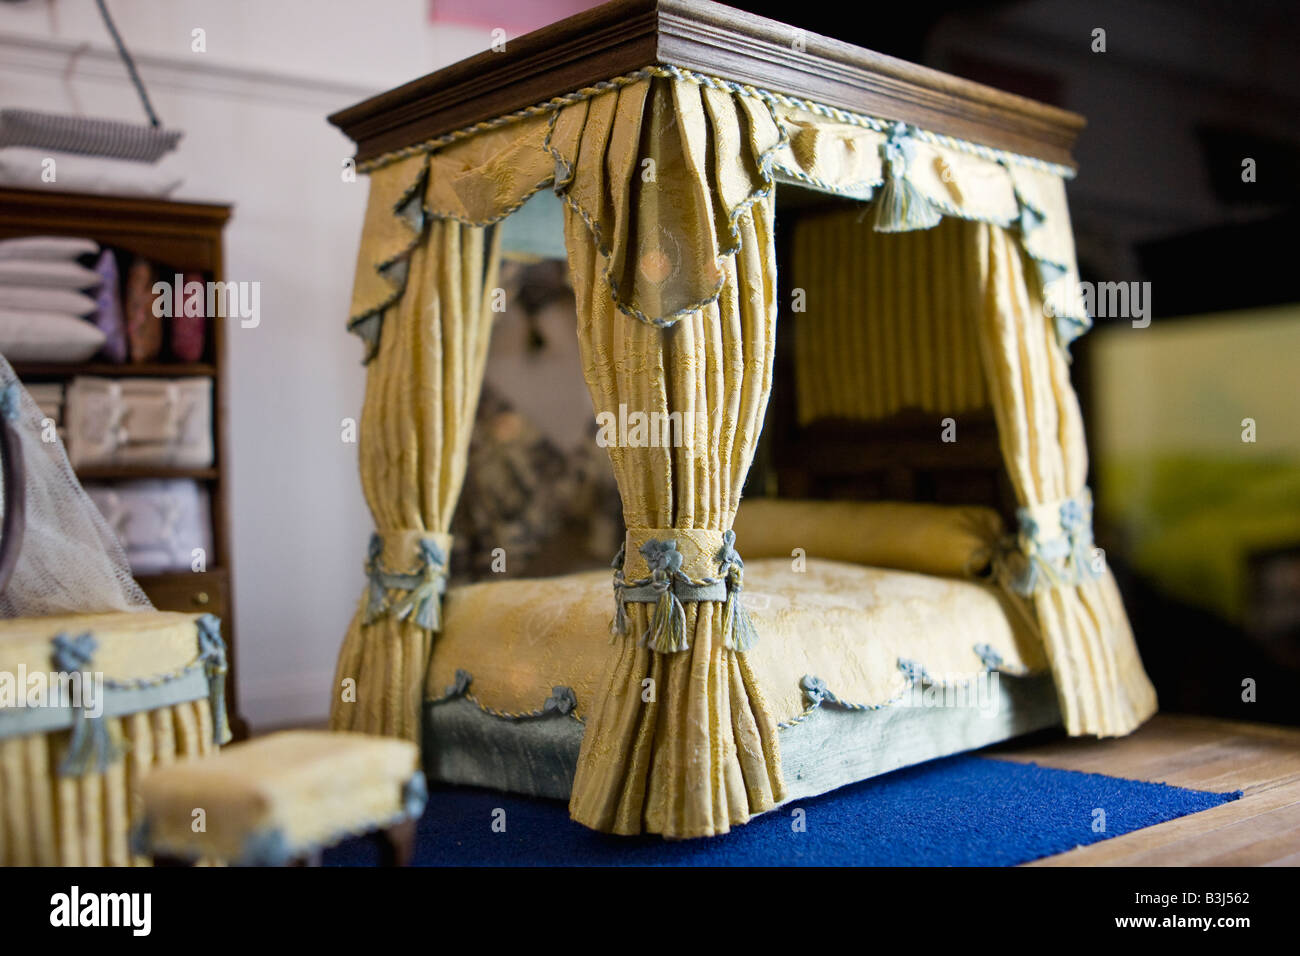 Miniature scene from Doll s House collection at Leonardslee Gardens Sussex England - Stock Image